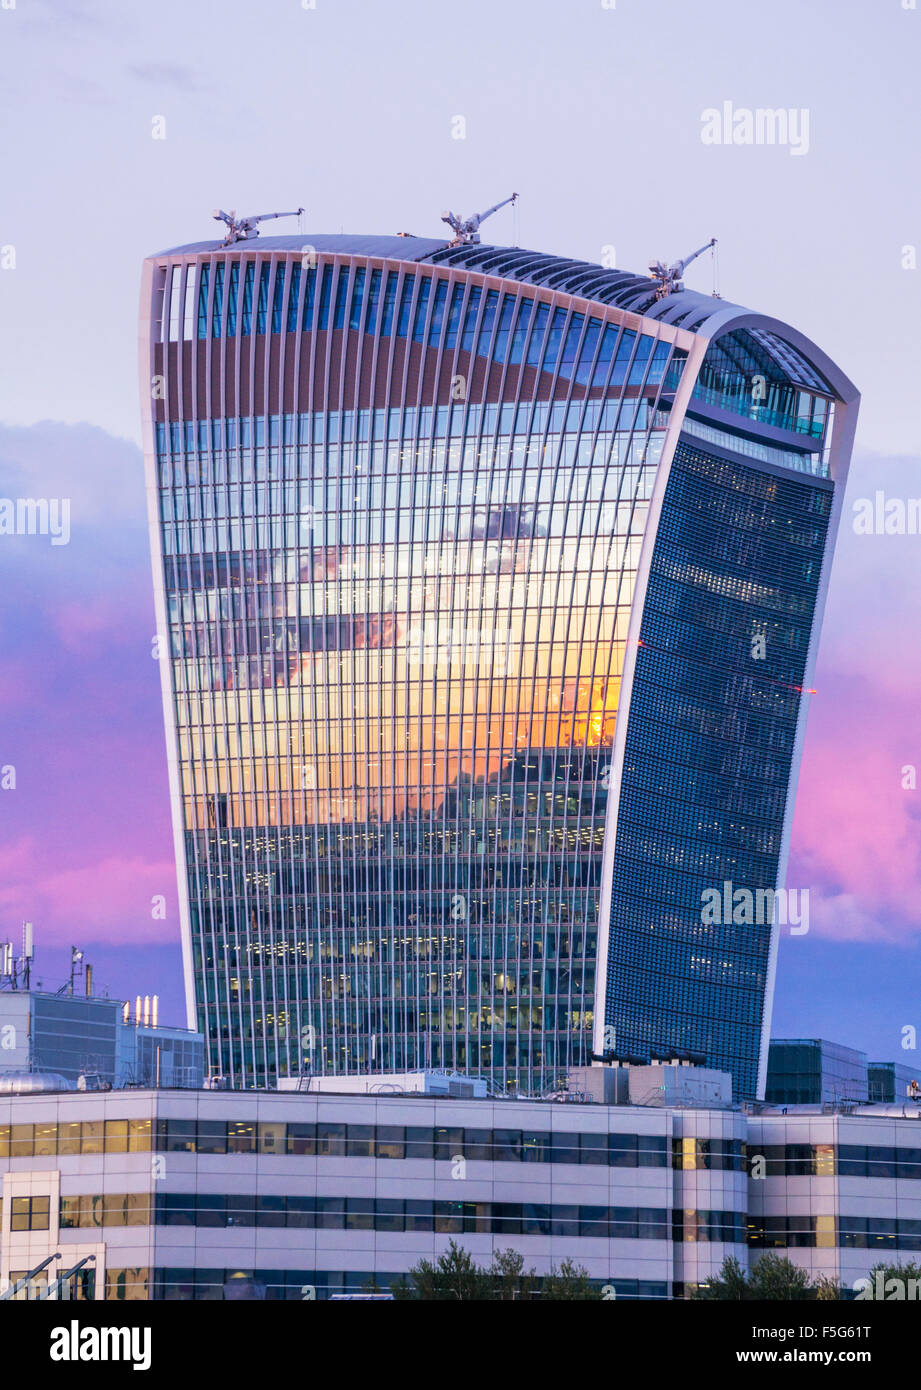 The Walkie talkie skyscraper building or 20 Fenchurch Street at sunset City of London England UK GB EU Europe - Stock Image